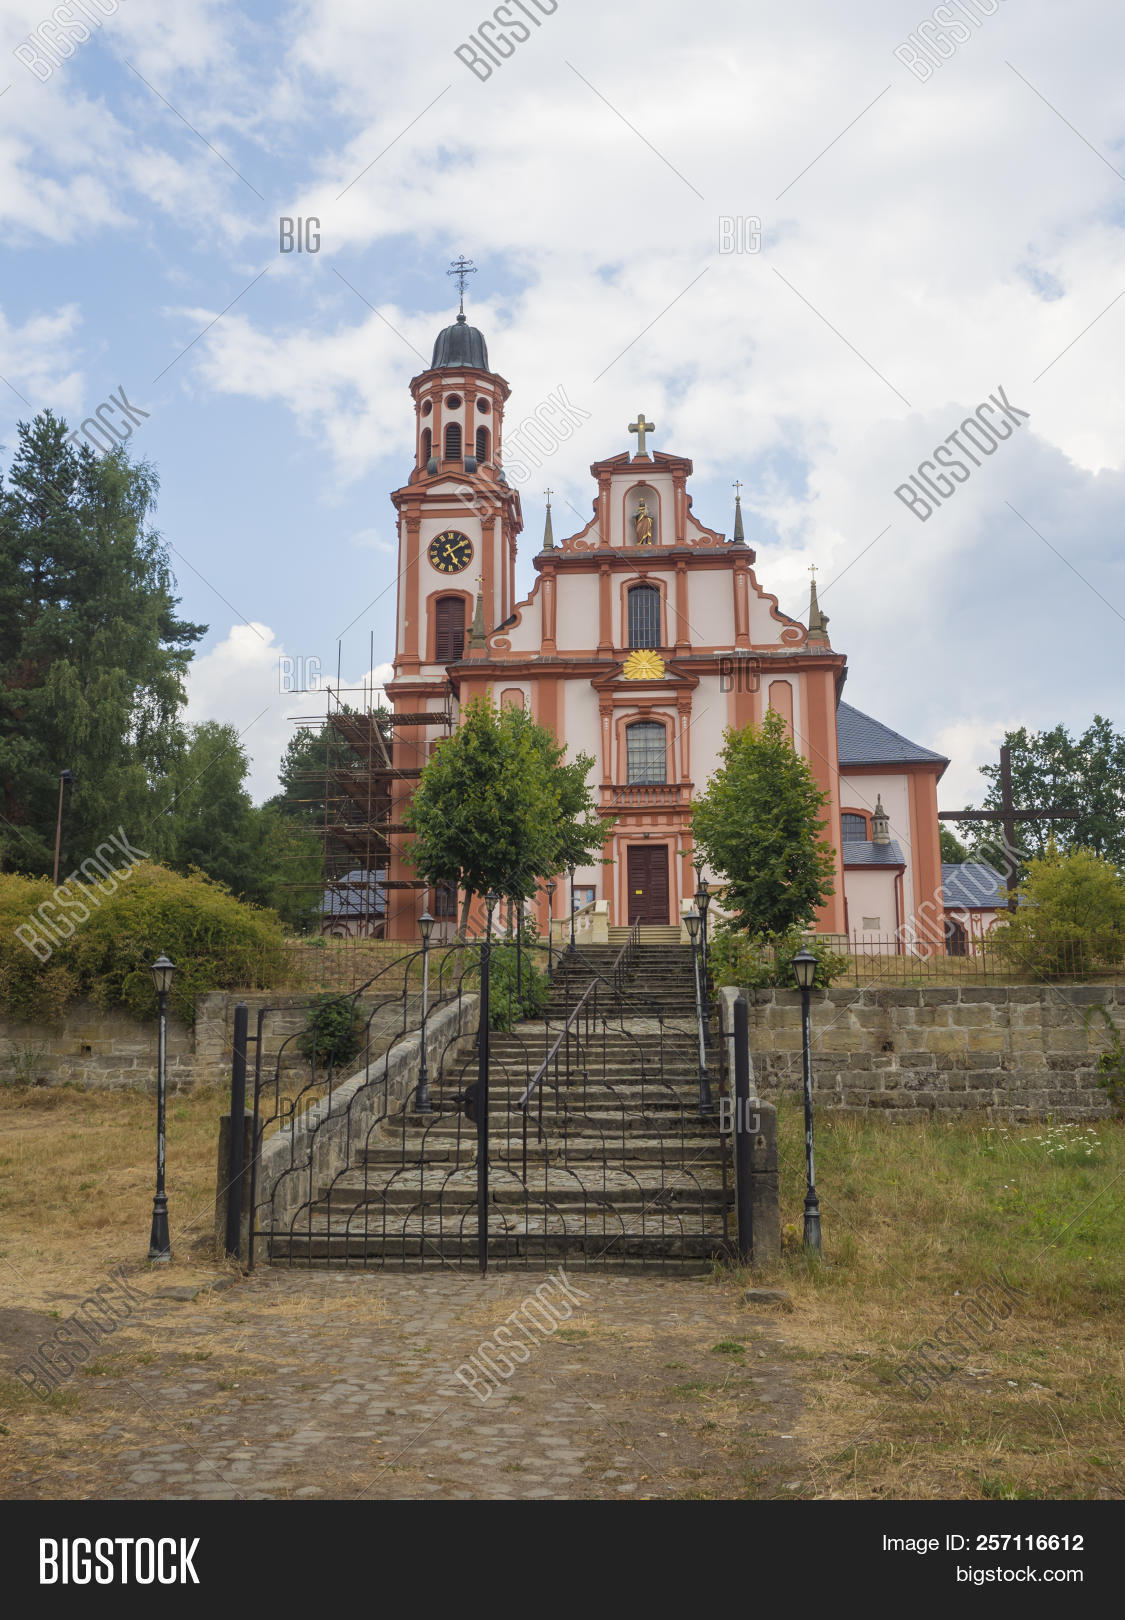 Lusatian,Magdalene,Marenice,Mountains,ancient,architecture,baroque,blue,bohemia,building,christian,christianity,church,cloud,cloudy,curves,czech,decorated,entrance,europe,historical,landmark,mary,old,pink,portal,religion,religious,republic,saint,sky,stairs,style,summer,sunny,temple,tower,travel,vibrant,wall,way,white